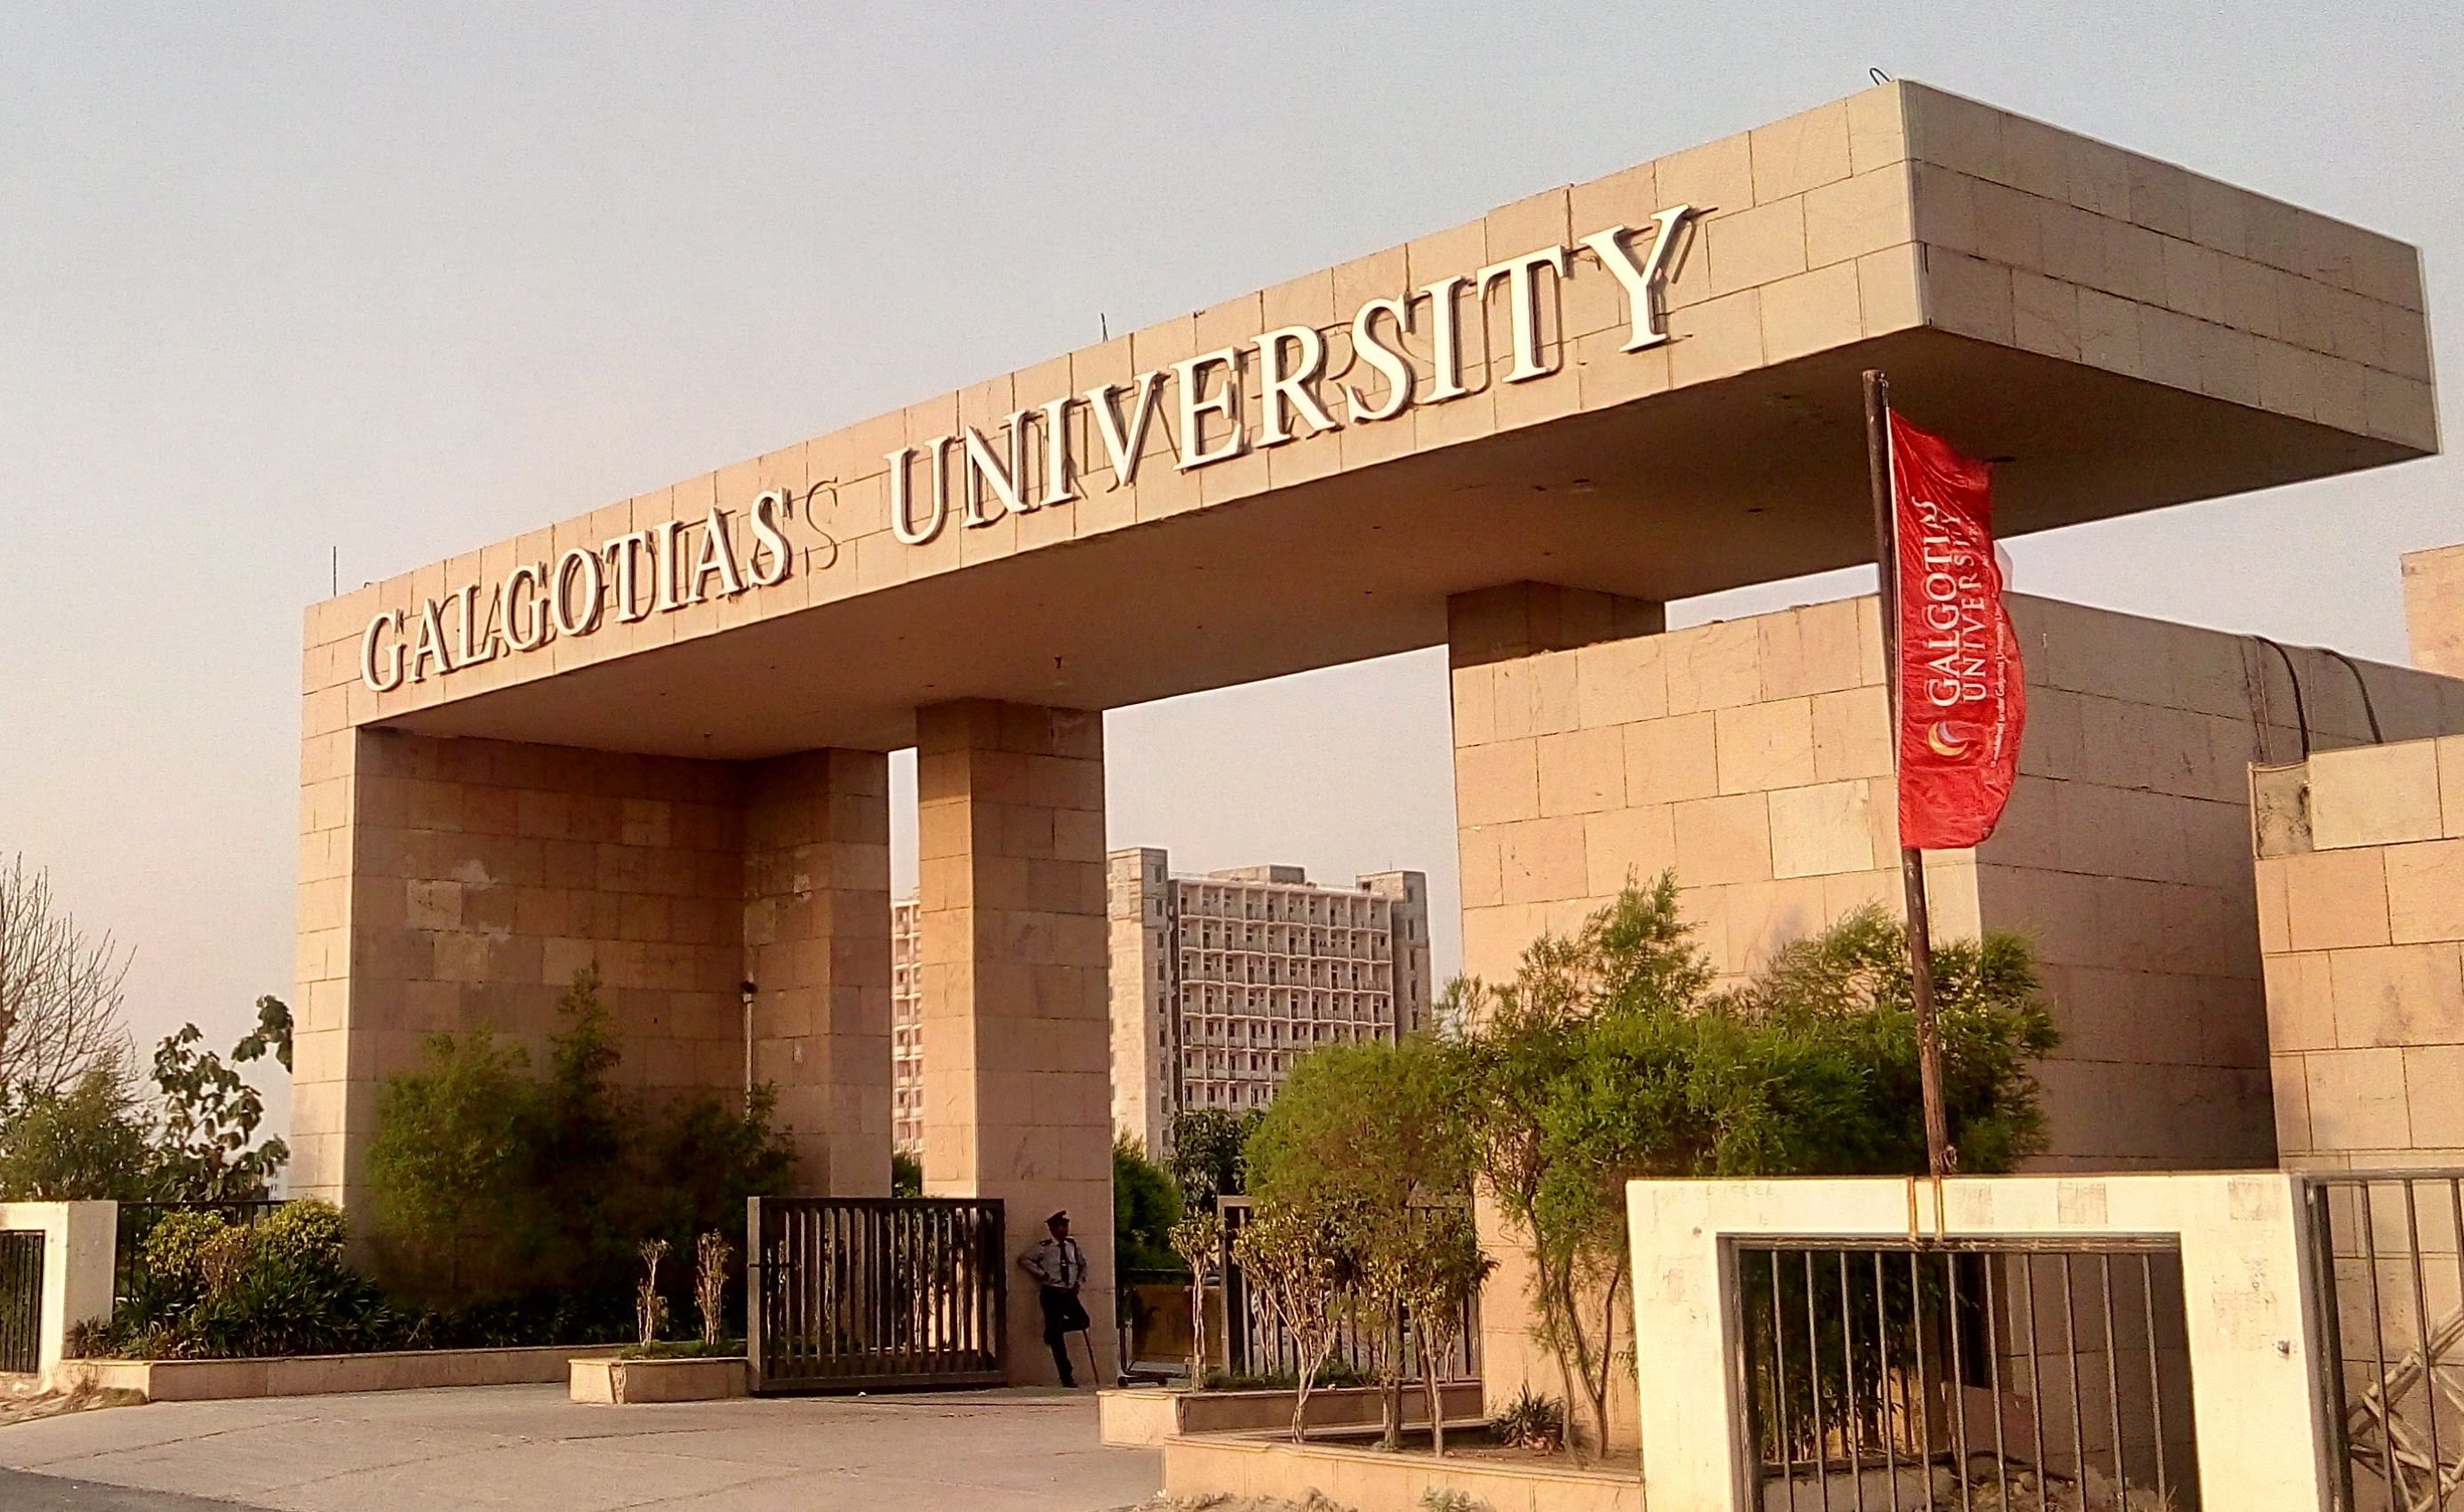 Galgotias University, is one of the coeducational private